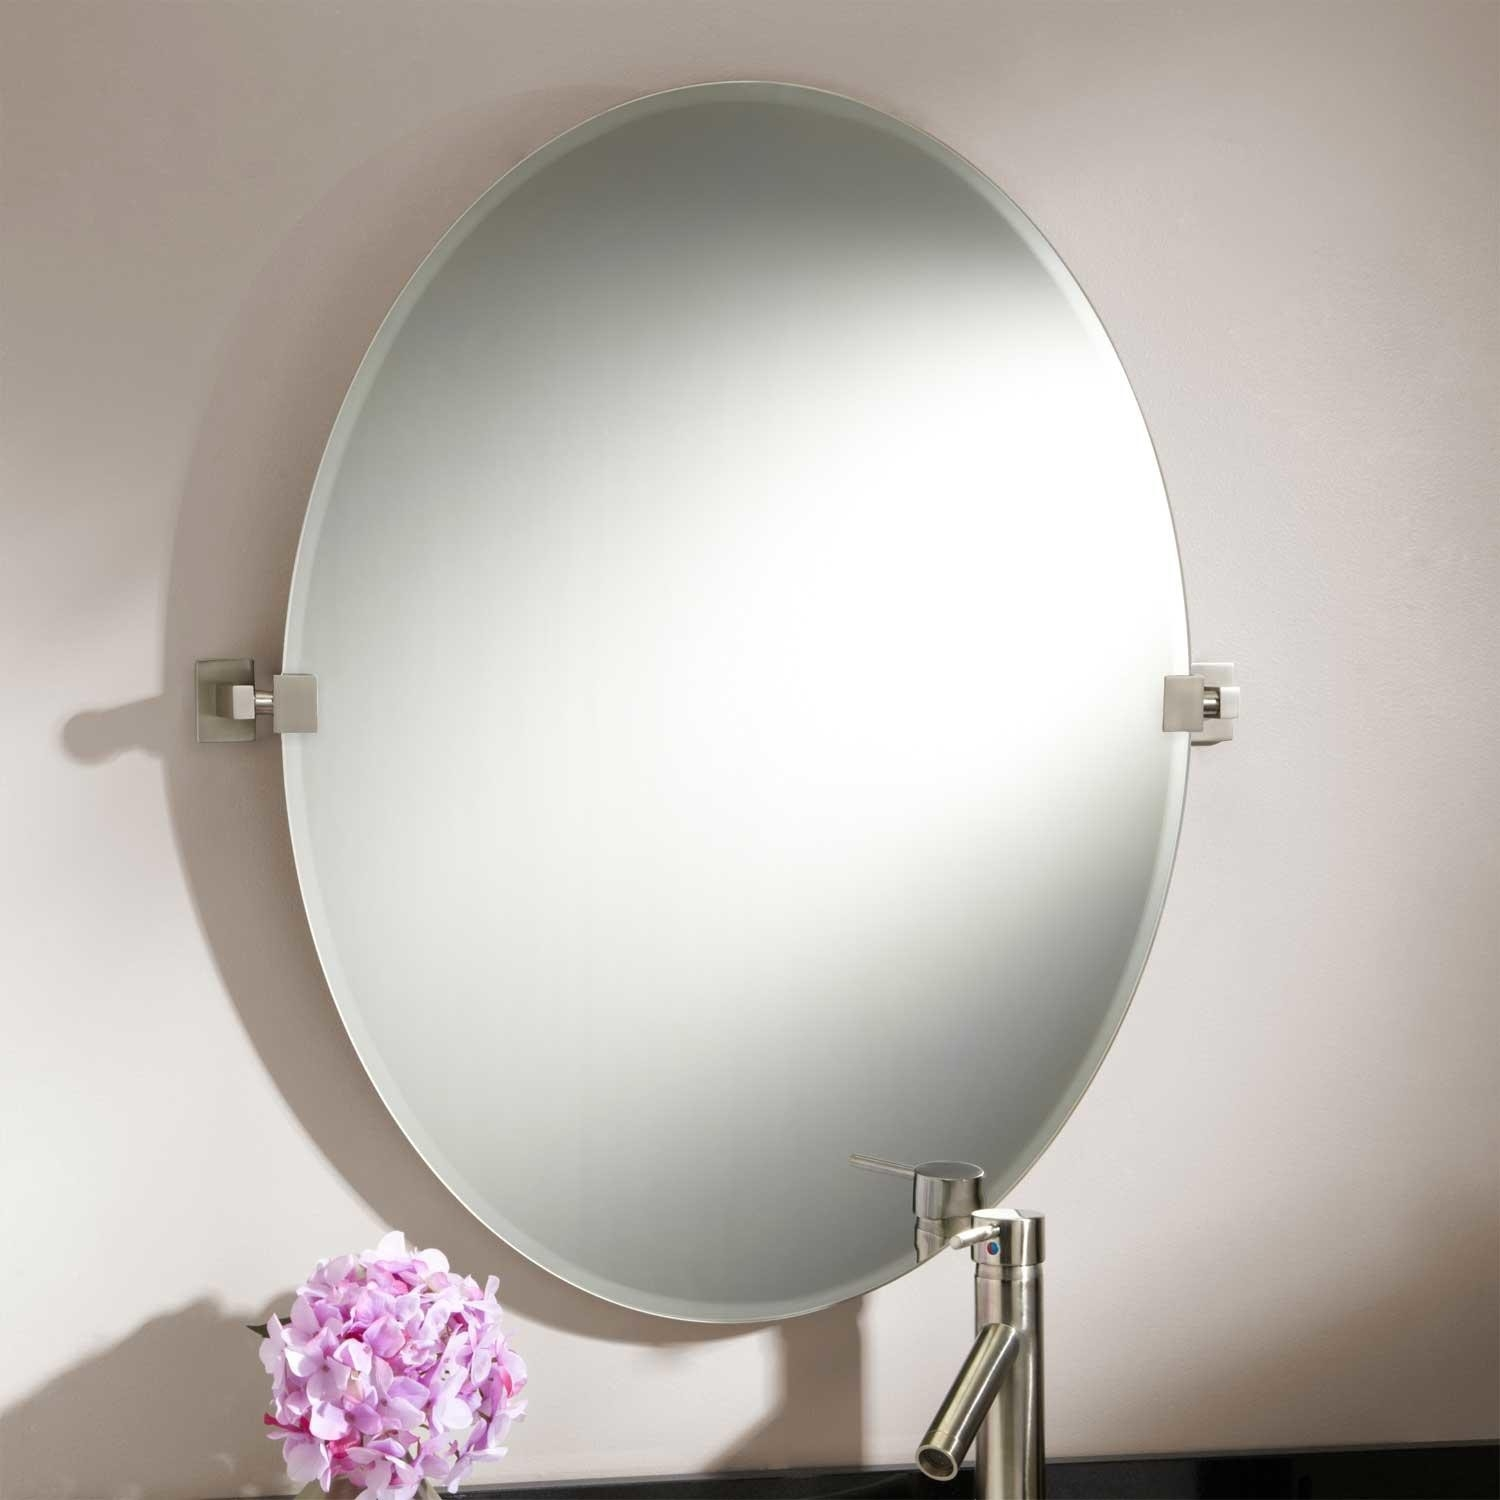 Permalink to Oval Pivot Mirrors For Bathroom